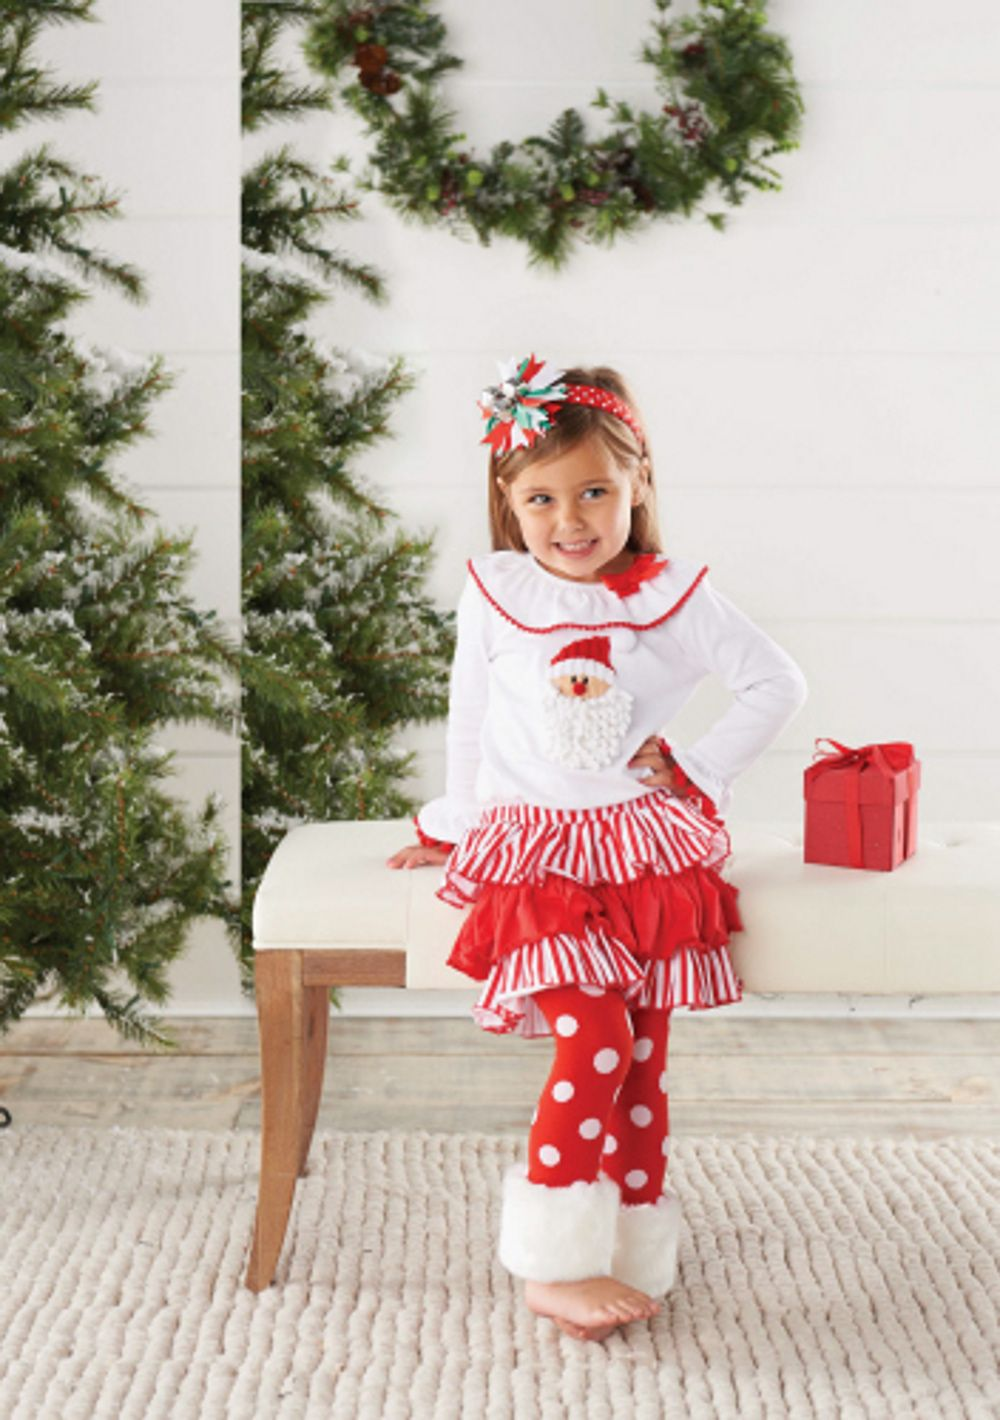 Mud Pie Baby Girls's Christmas Outfits: White Toddler or Infant ...